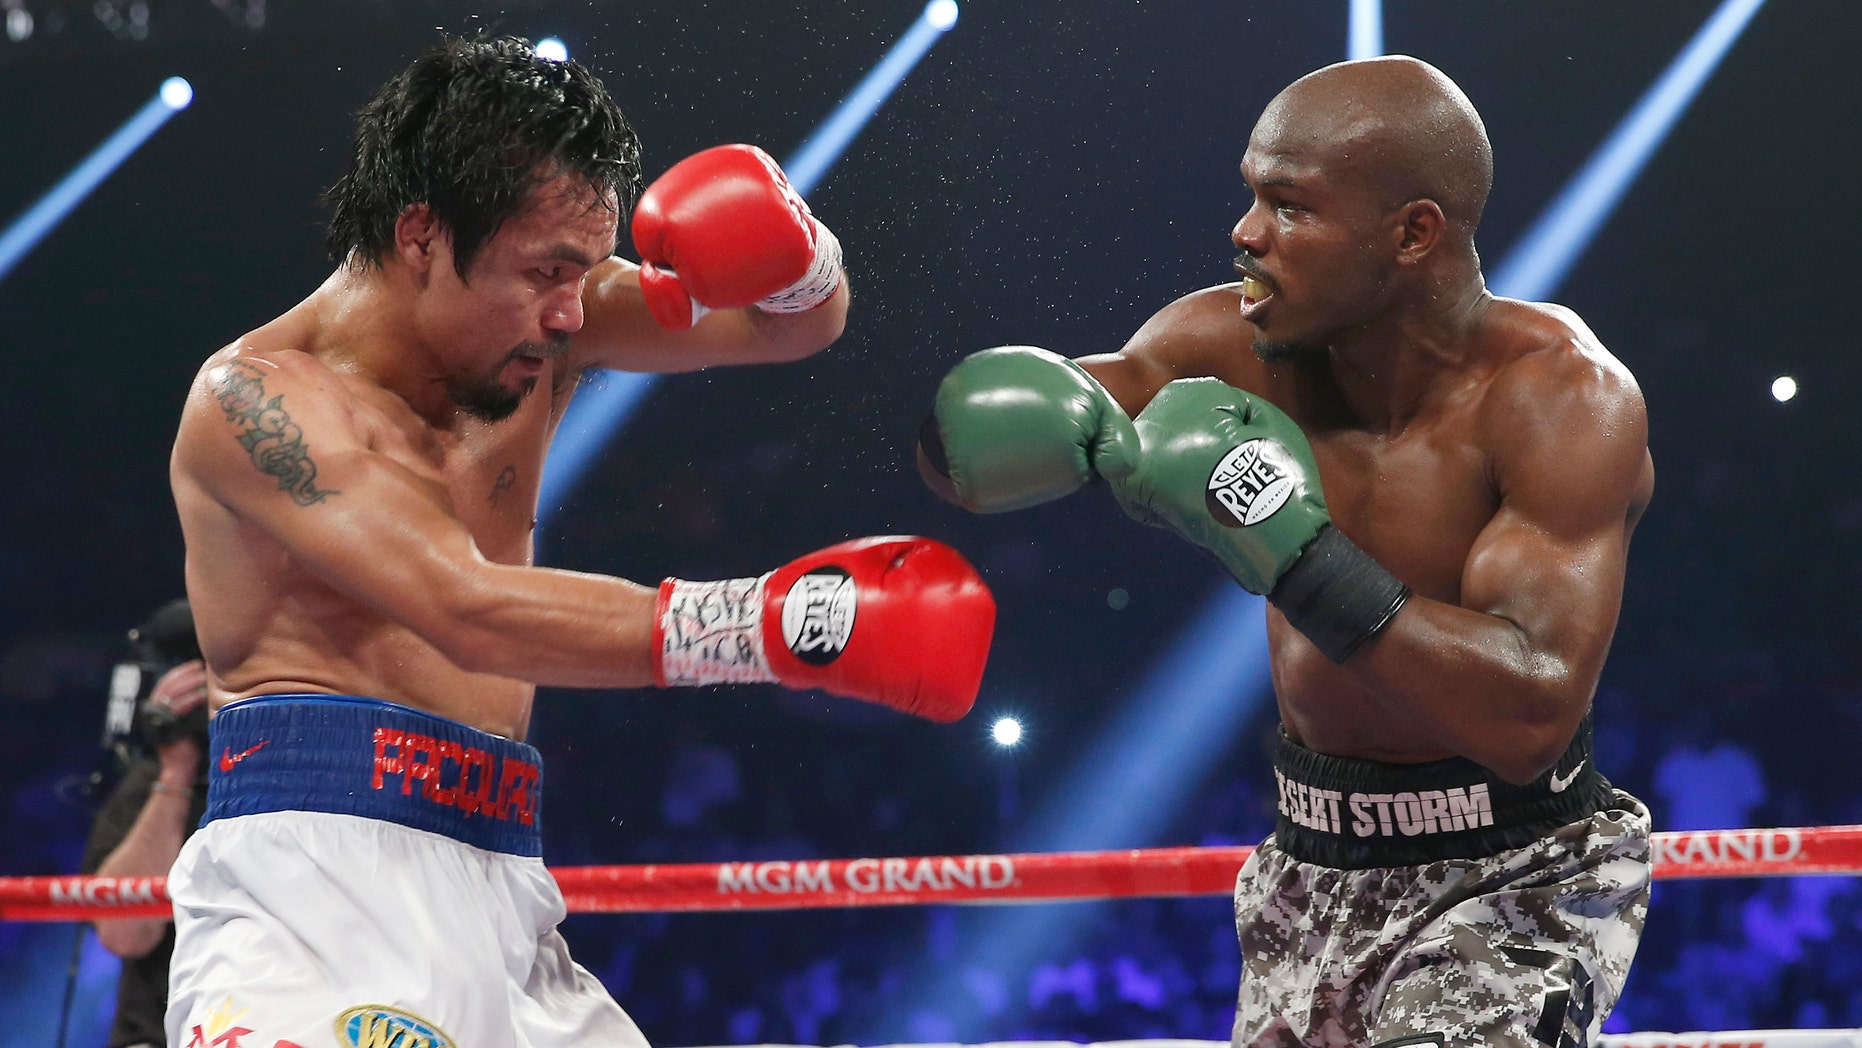 Manny Pacquiao, left, of the Philippines shields himself as Timothy Bradley throws a punch during the WBO welterweight title boxing fight Saturday, April 12, 2014, in Las Vegas. (AP Photo/Eric Jamison)